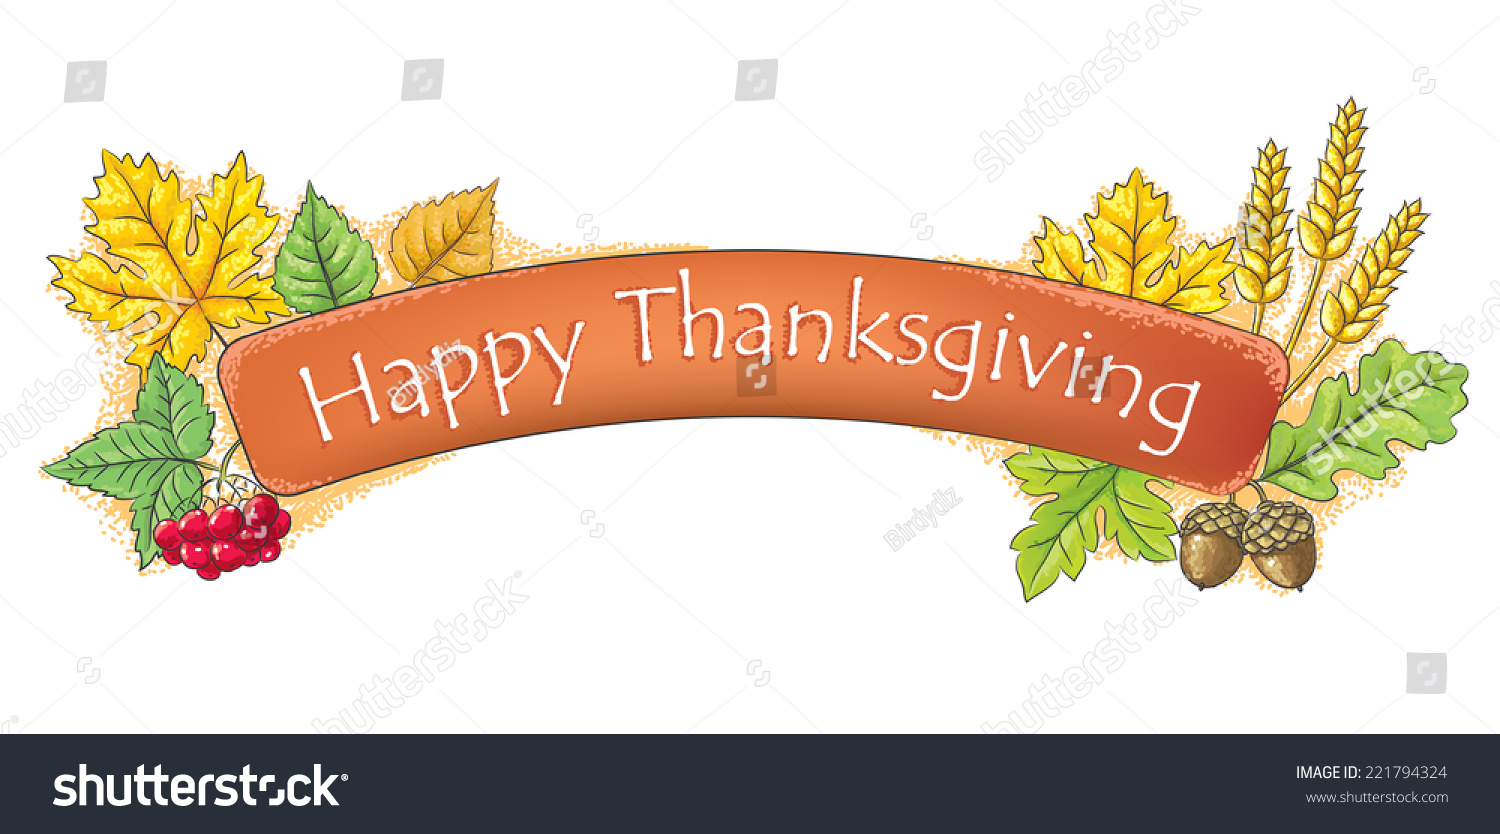 Happy Thanksgiving Banners Quotes Lol Rofl Pictures Of Happy ...